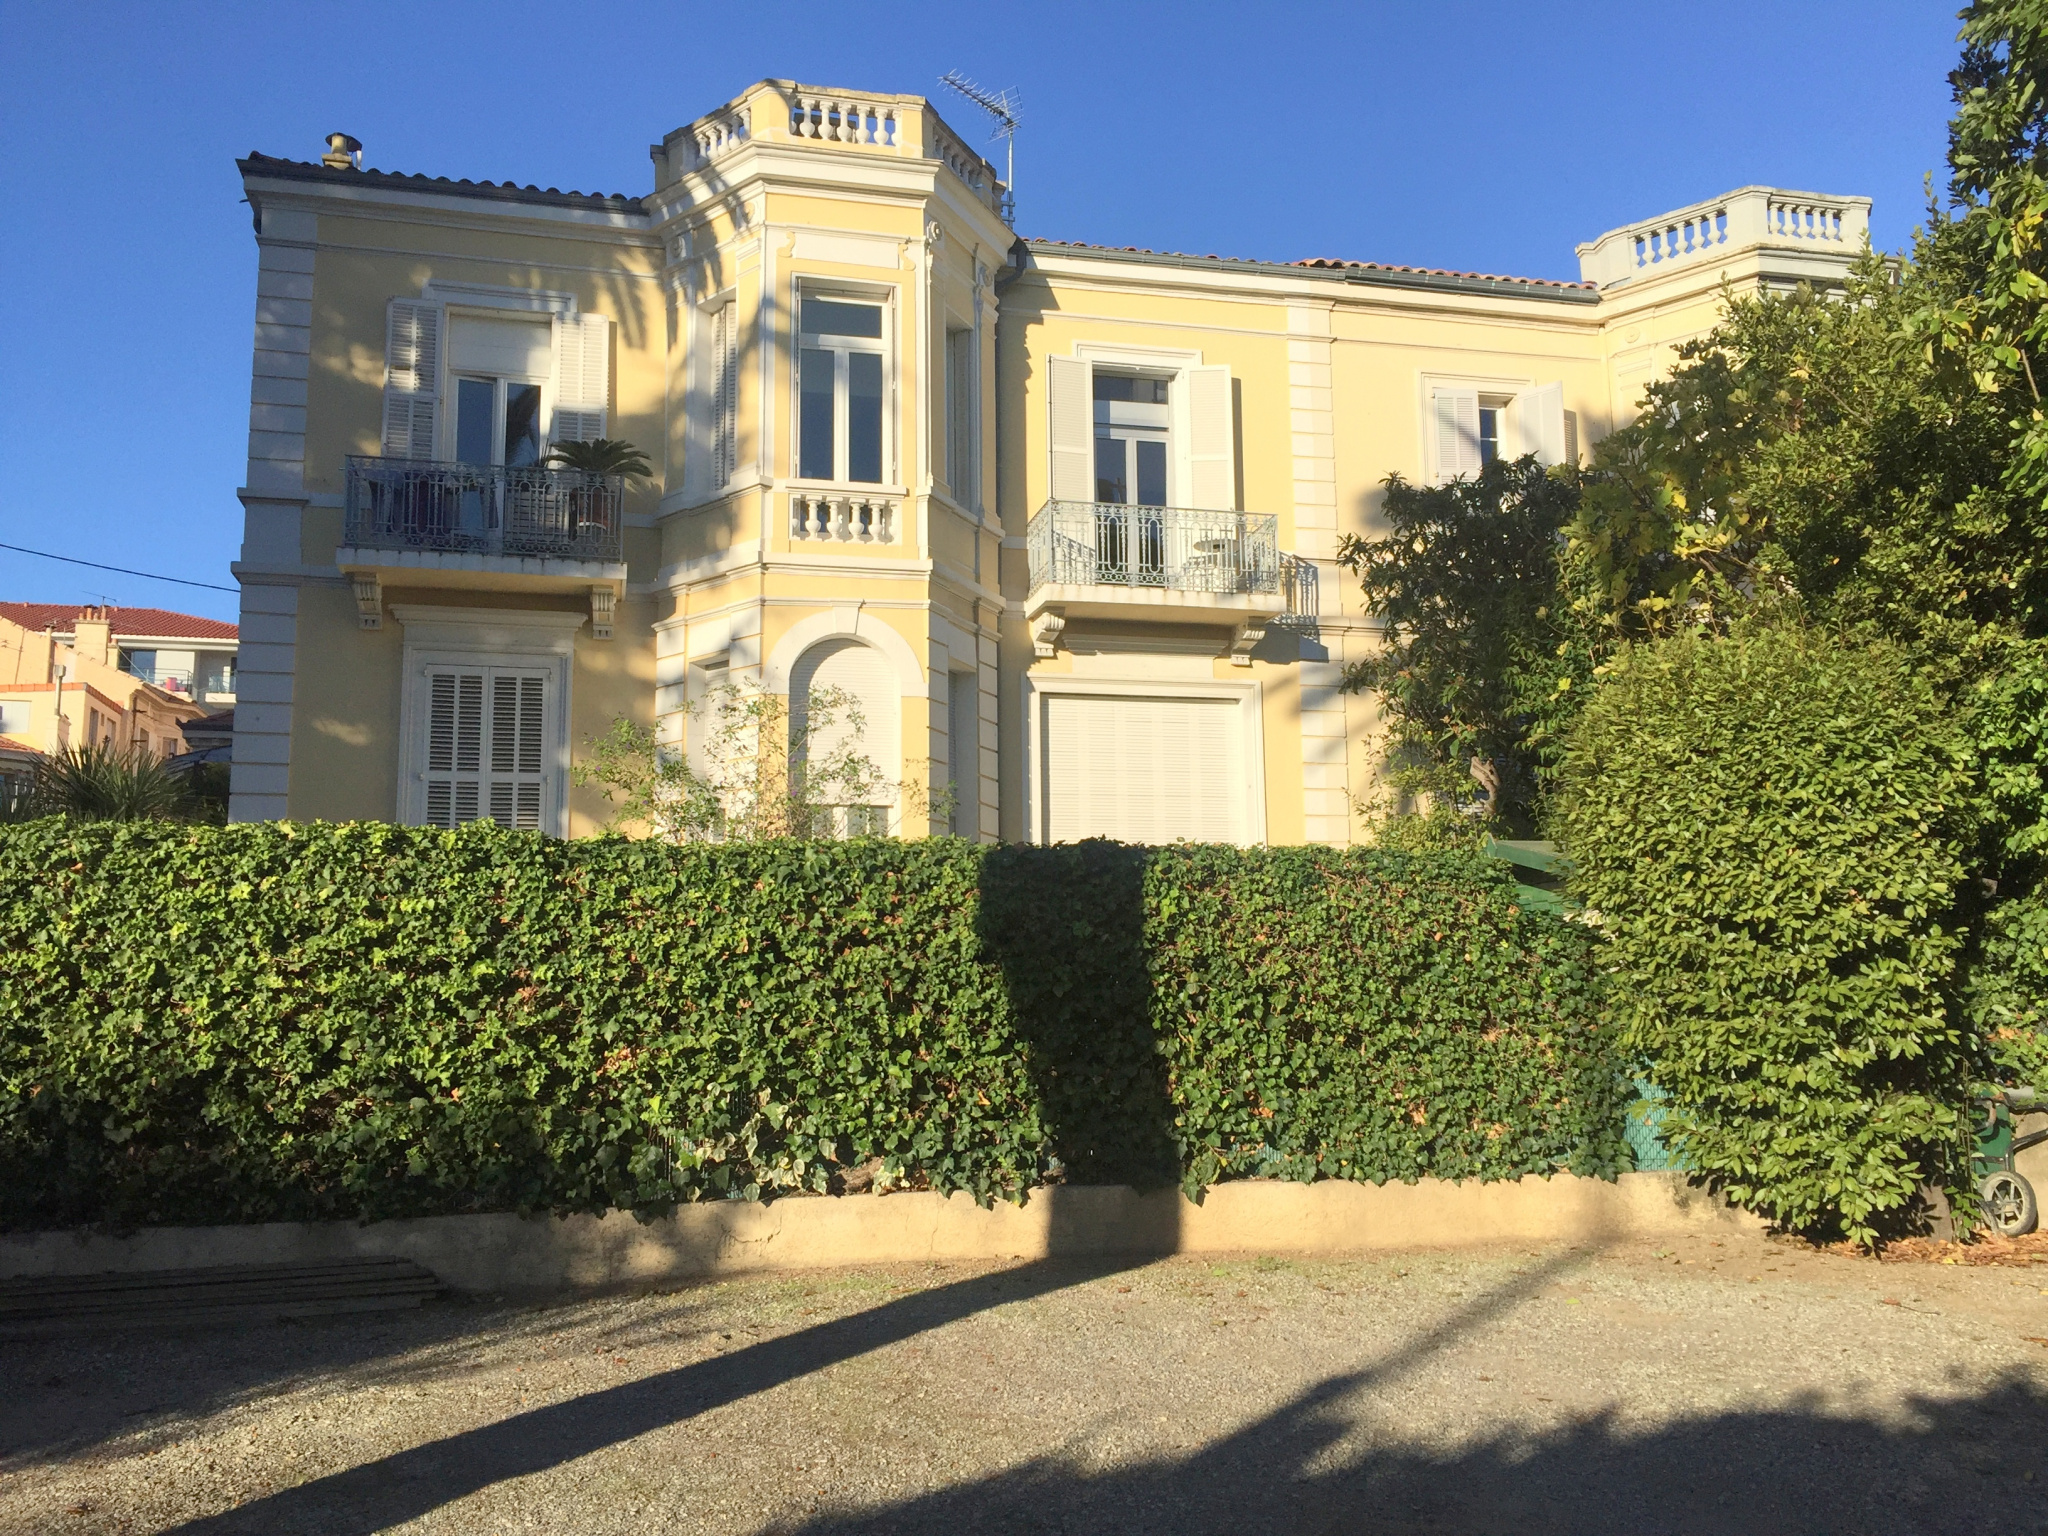 Agencia immobilier agence immobili re cannes et le for Location achat immobilier